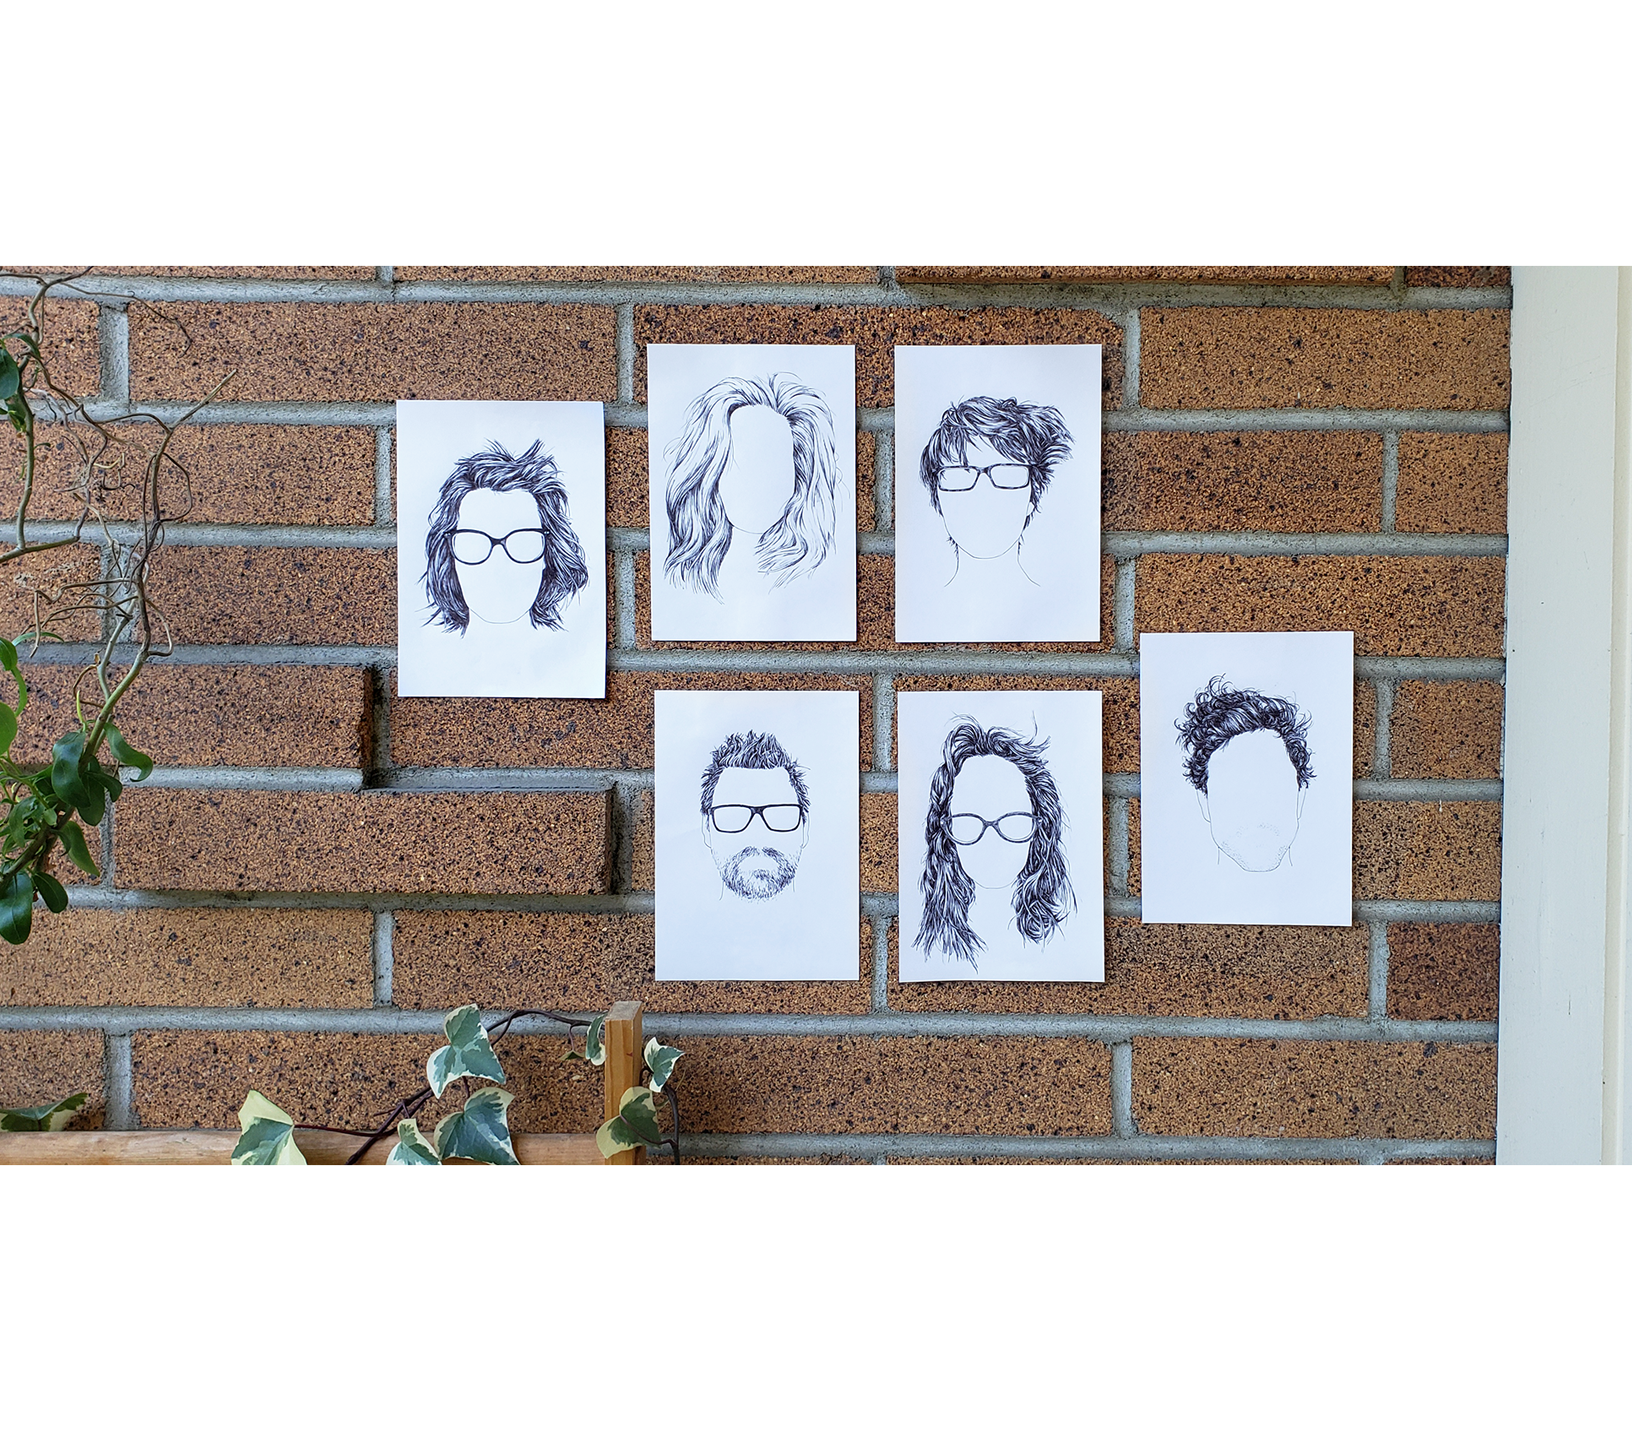 six line drawings of wild morning hair taped on a brick wall, glasses included but faces blank